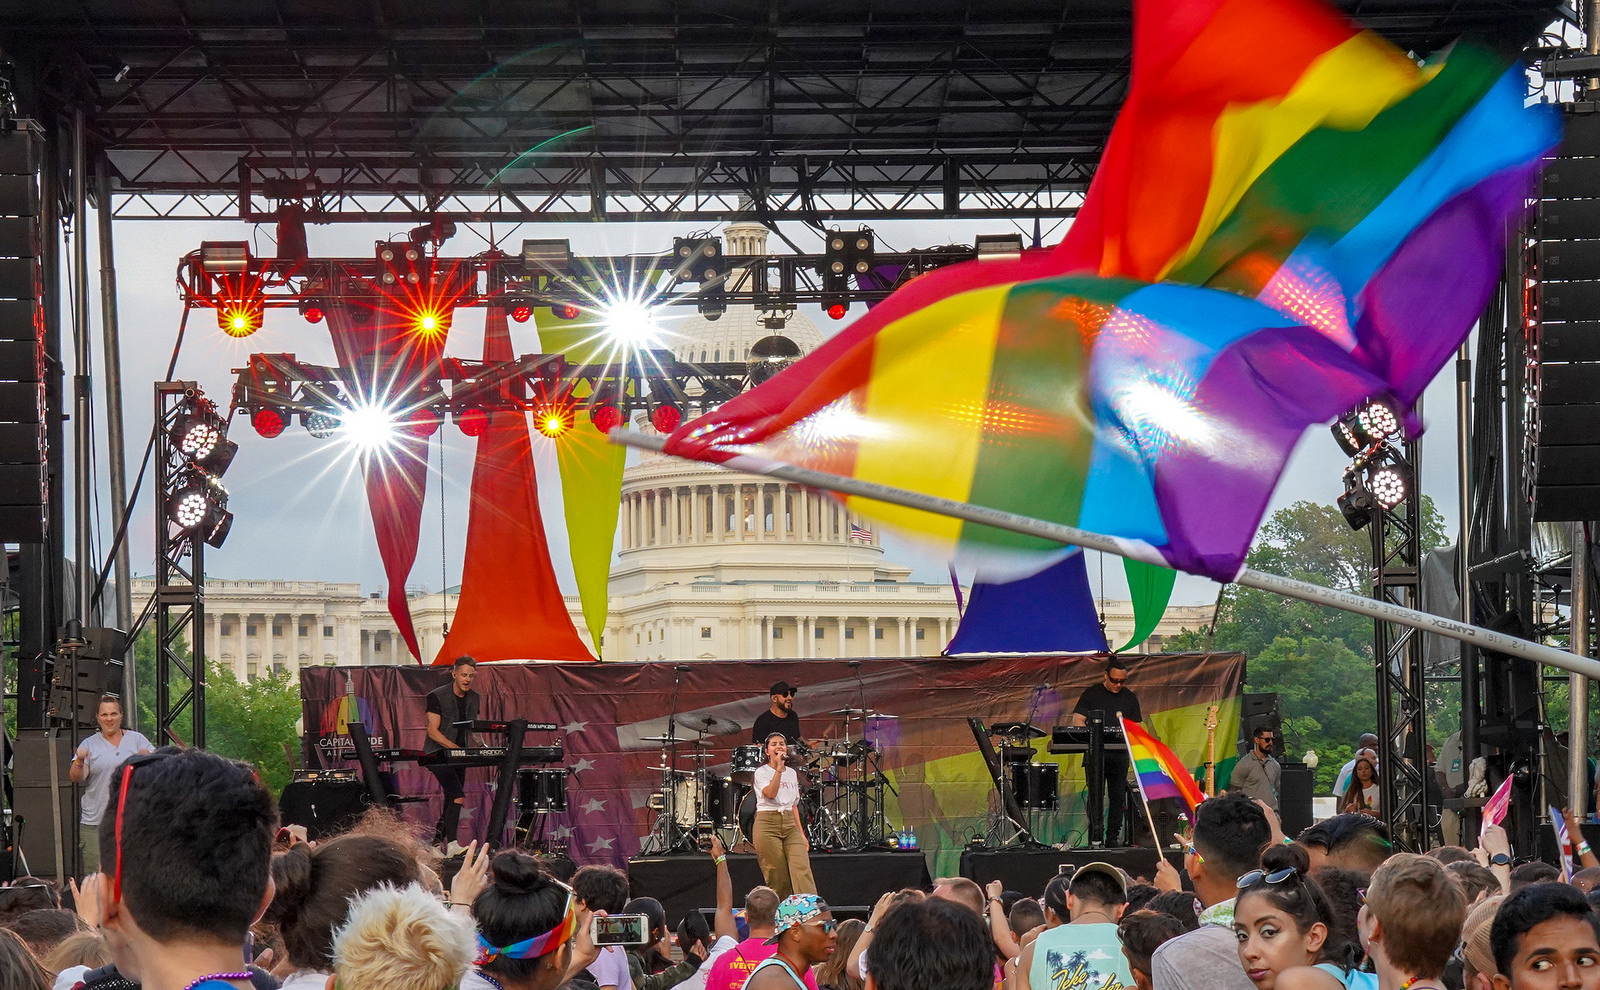 2018.06.10 Alessia Cara at the Capital Pride Concert with a Sony A7III, Washington, DC USA 03567